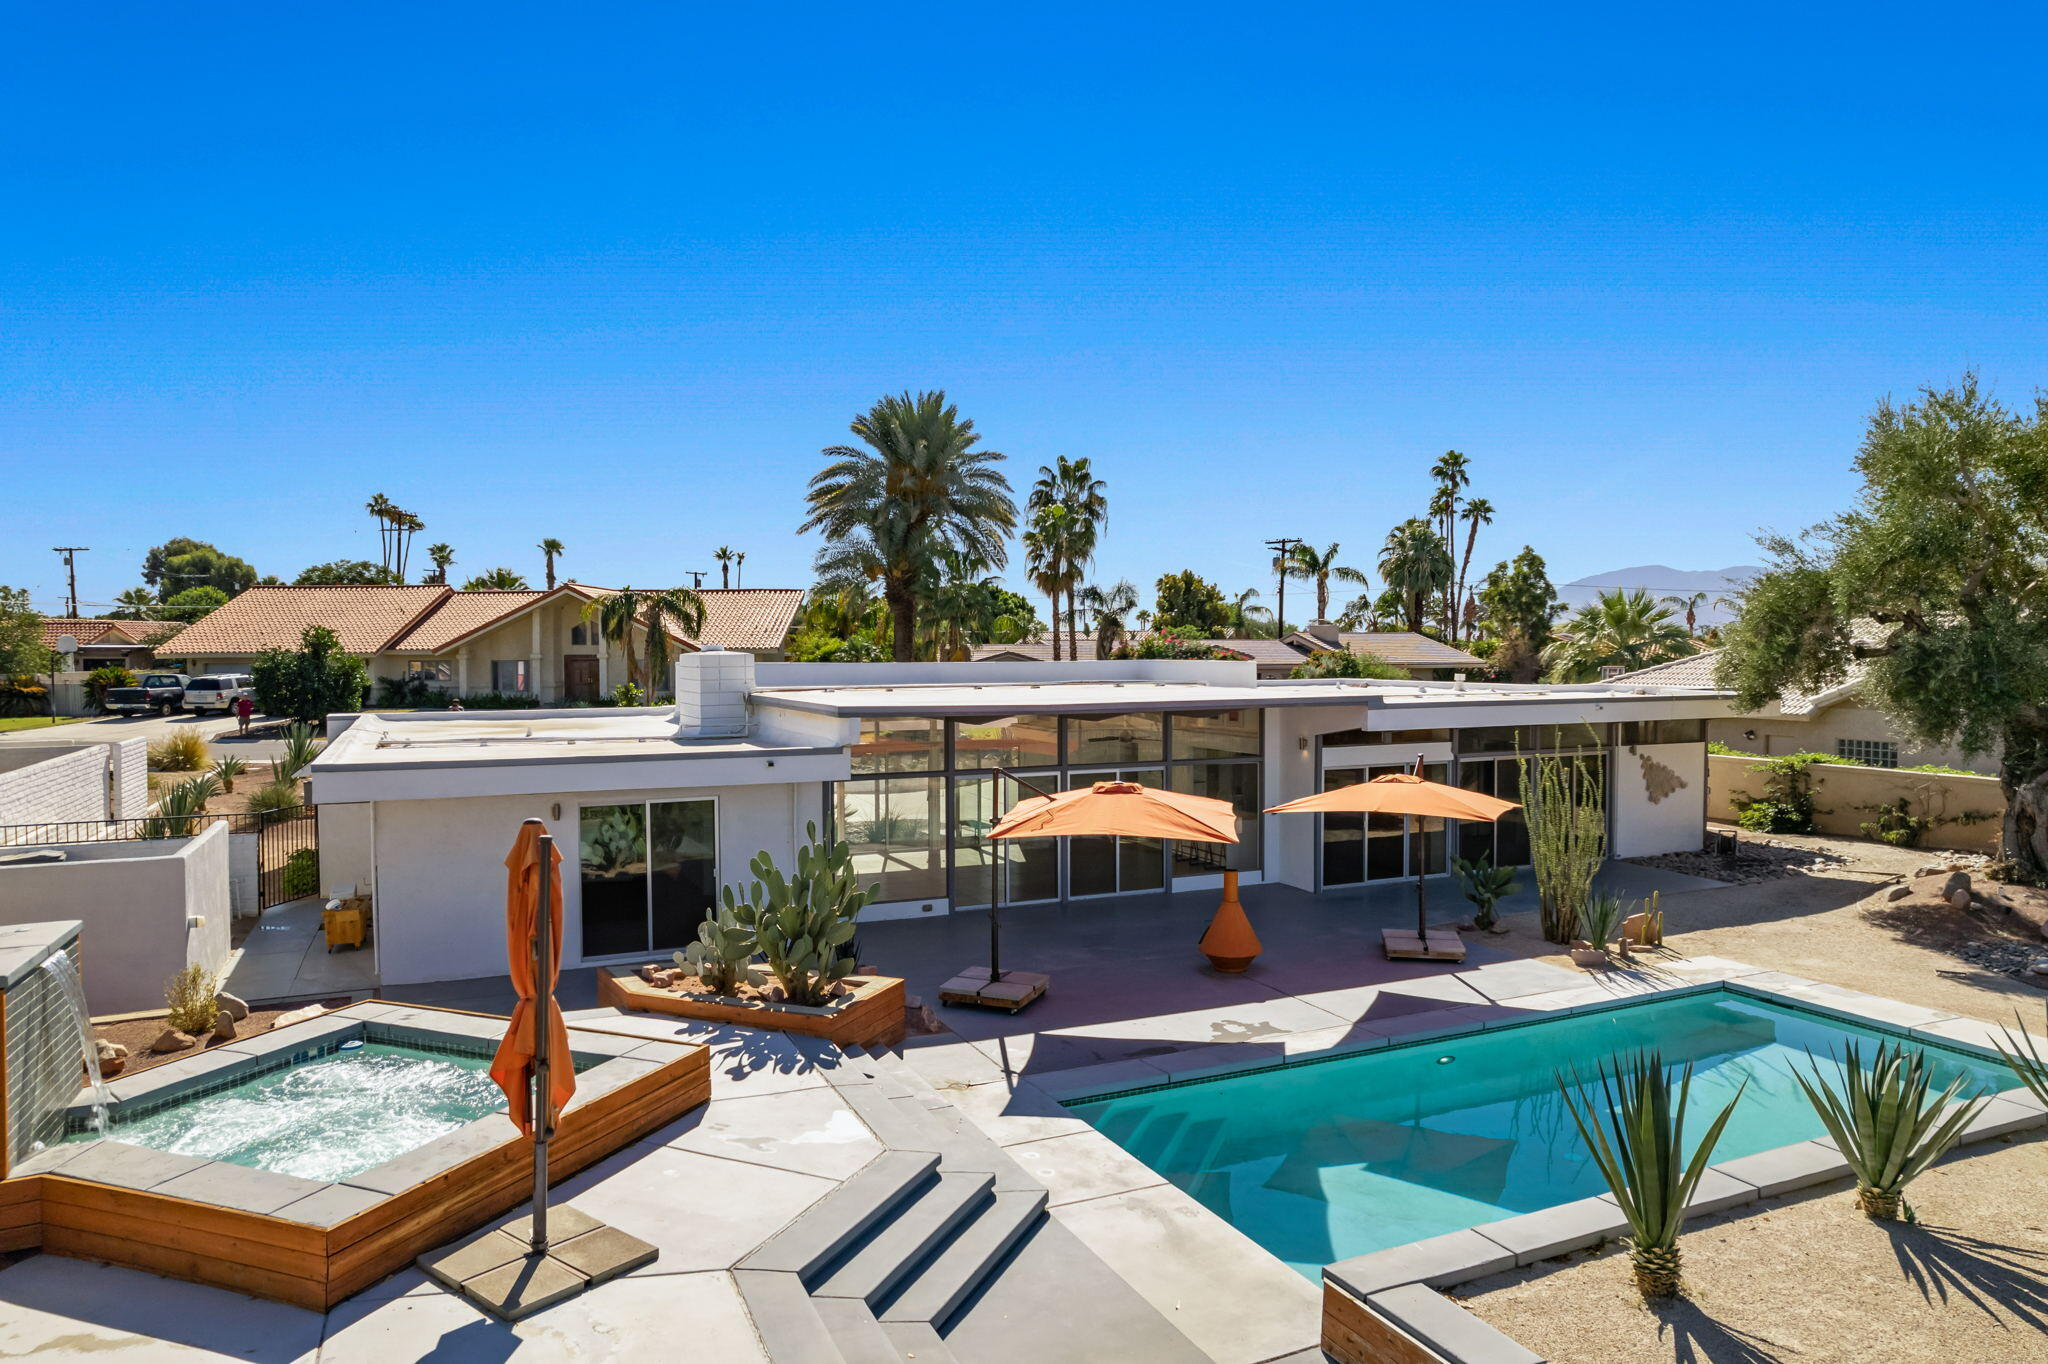 Your chance to own an iconic, Mid-Century pool home on a stunning golf course with explosive mountain views! Situated behind the gates of Bermuda Dunes Country Club and rich with hosting the infamous Bob Hope Classics for 49 years, this entertainer's home features a semi circular driveway, impressive double door entrance with clerestory windows in every room that perfectly feature the our desert mountain tops, the multi level pool area and prized golf course. A rare three bedroom, all ensuite and two feature walk-in closets. Additionally all bedrooms have sliders leading to the pool area and huge outdoor living spaces with too many features to list.  BDCC HOA is $199 per month and includes guarded gates of entry, 24 hour security patrol, cable package with premium channels including Showtime & HBO, wifi/internet and all equipment to operate - all included in the HOA fee! In this part of the valley electricity is provided by IID which is significantly less expensive than SCE. Recent improvements include:  added foam roof, new HVAC, Quartz kitchen countertops, remodeled 3 bathrooms, replaced 9 sliding doors, replaced carpeting in bedrooms, repainted indoors and outdoors, new pool heater, filter and pump, acid washed pool, new garage door and lift motor, new double front doors, new main electrical feed, new hot water heater, upgraded exterior lighting, upgraded stovetop to gas, added access to septic tank, rewired pole to house, repainted fence and perimeter walls.